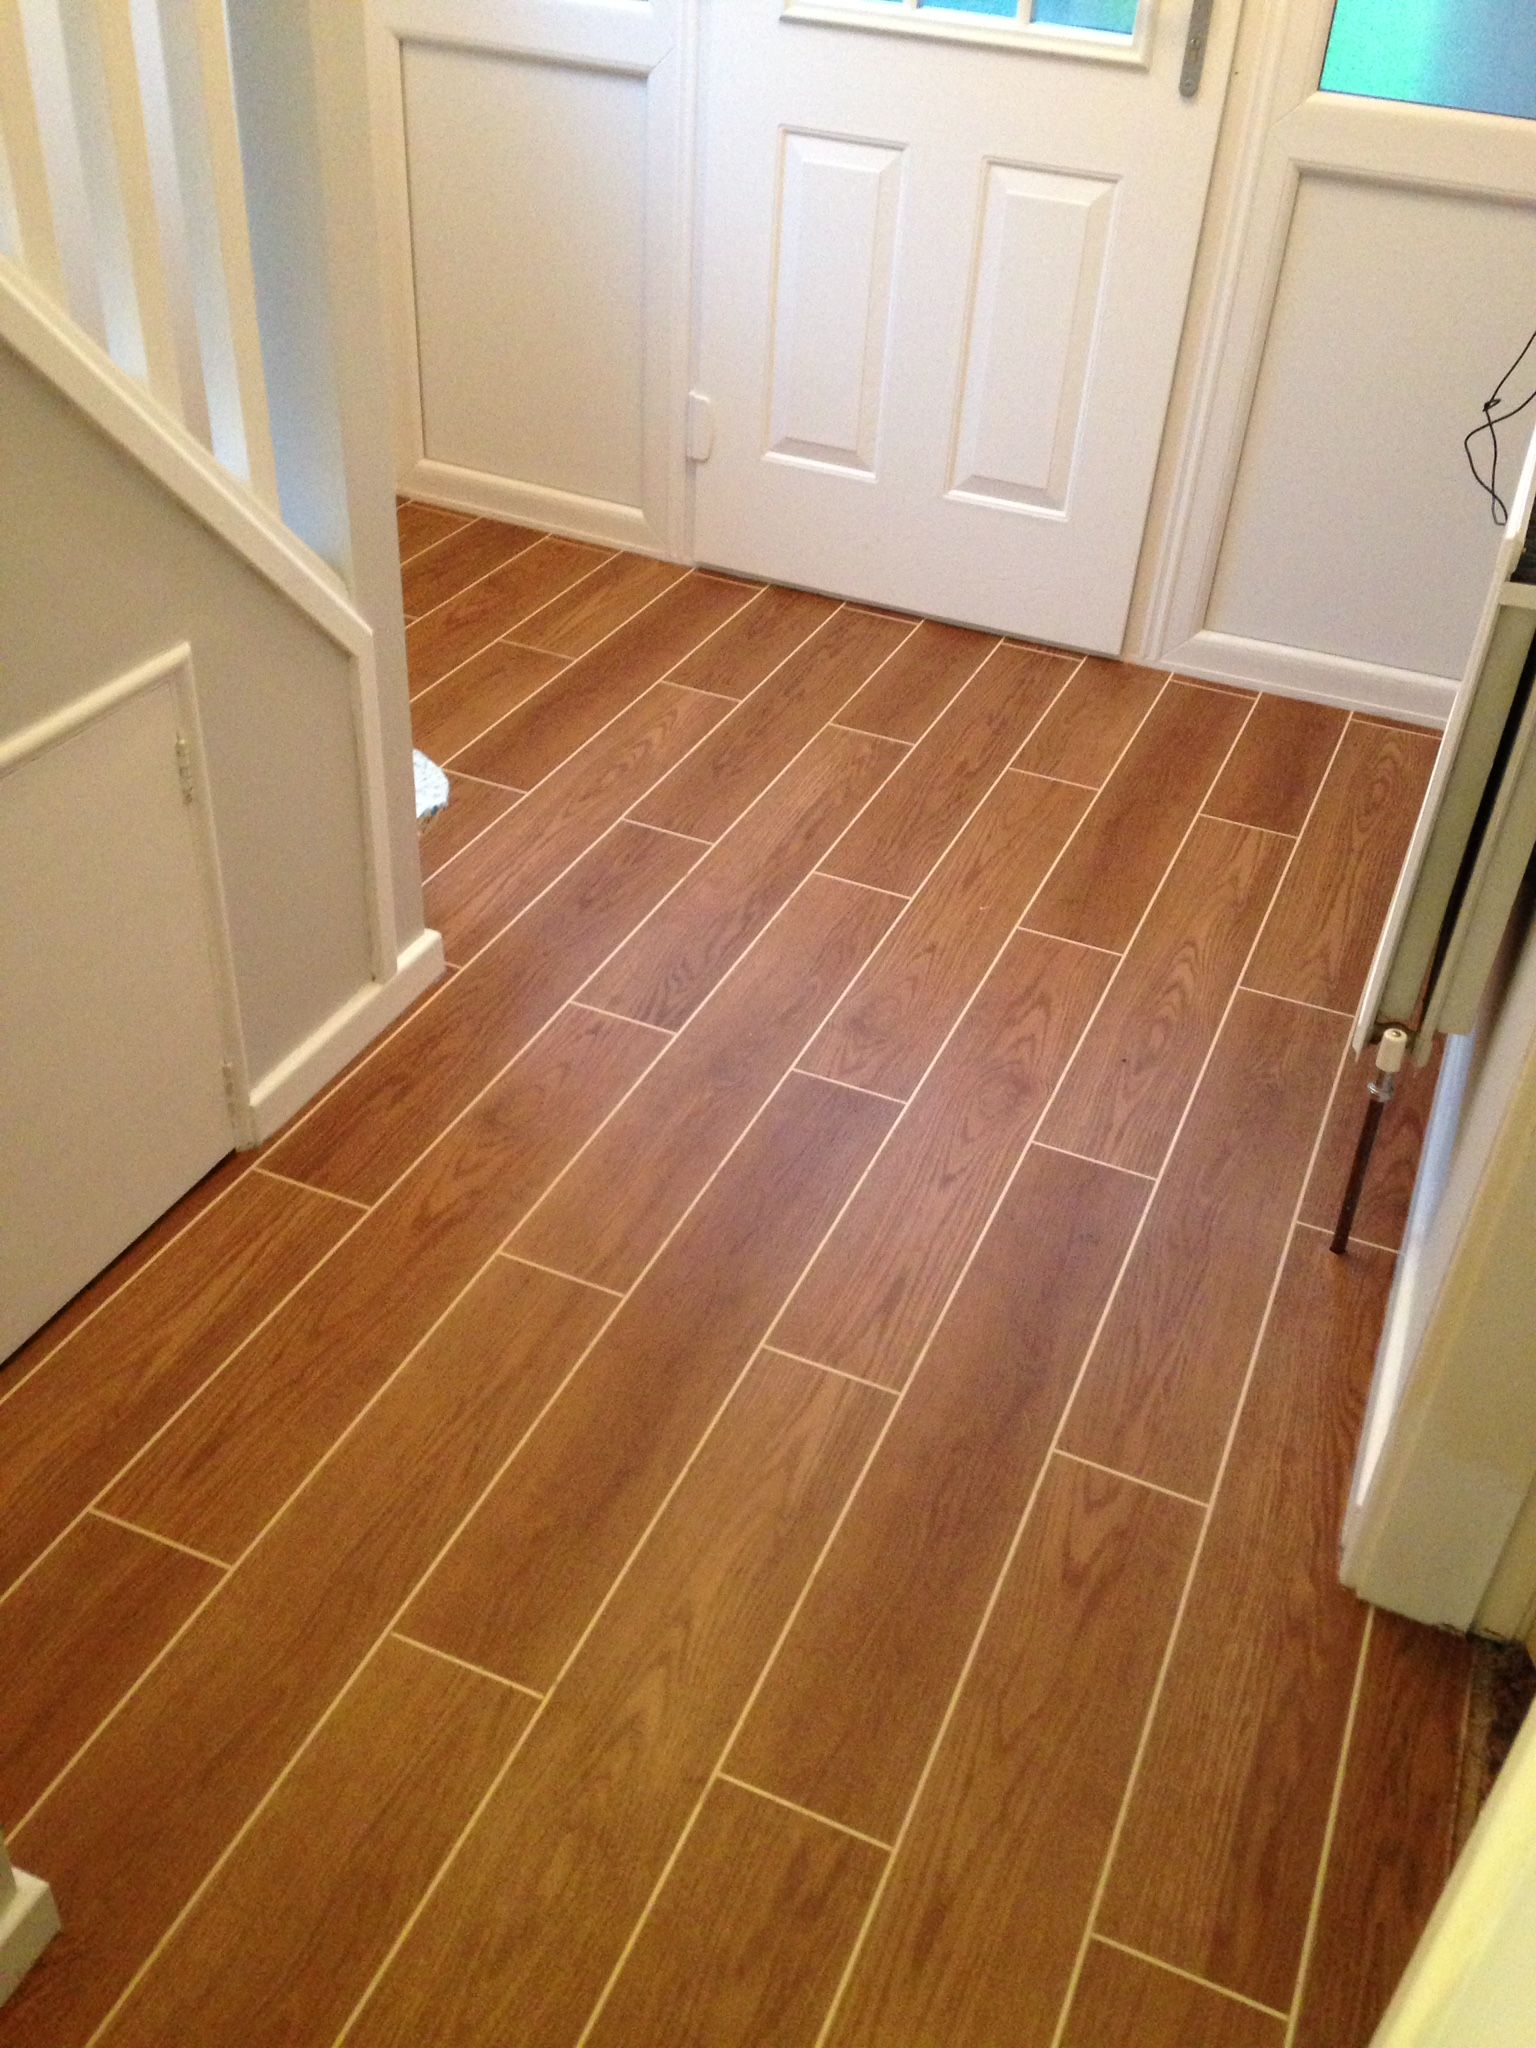 This Is Part Of The Tlc Range Colour Clic Oak With Cream Grout Strips